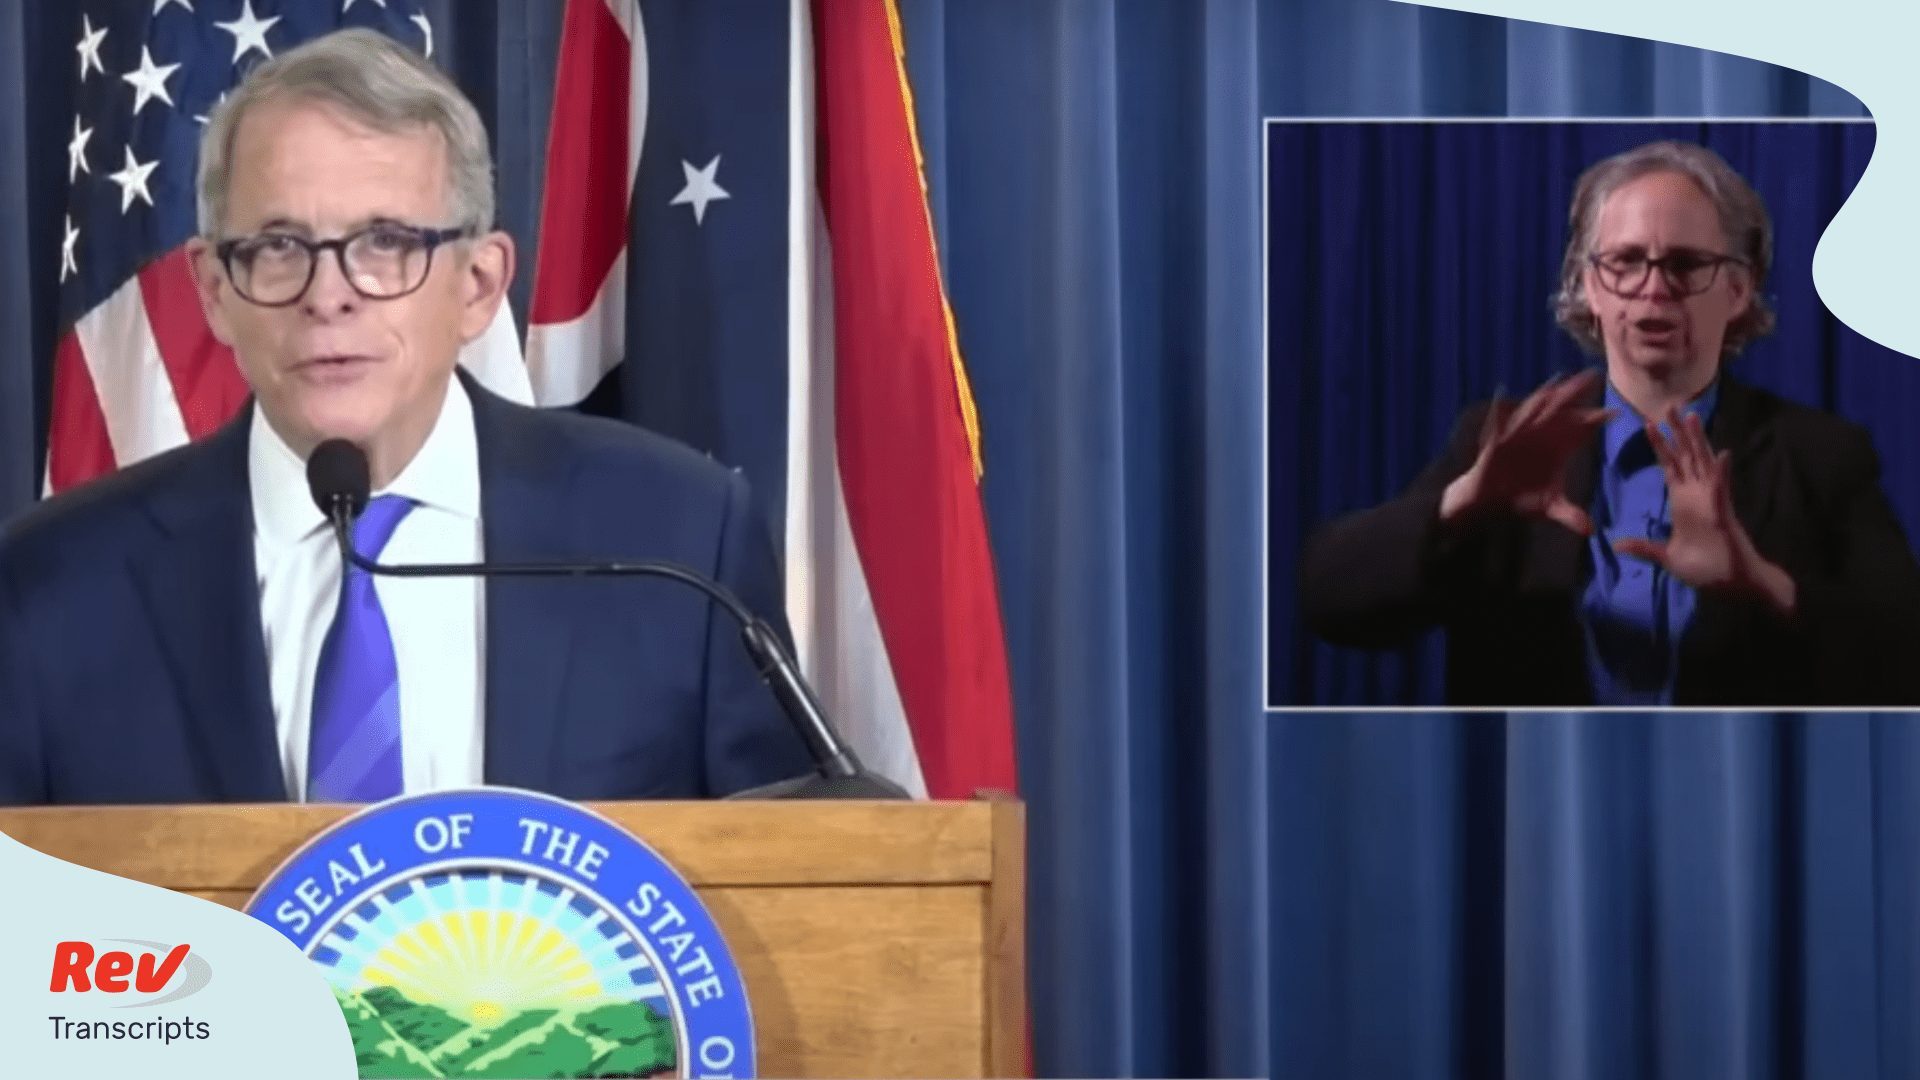 Ohio Governor Mike DeWine giving a press conference on July 9